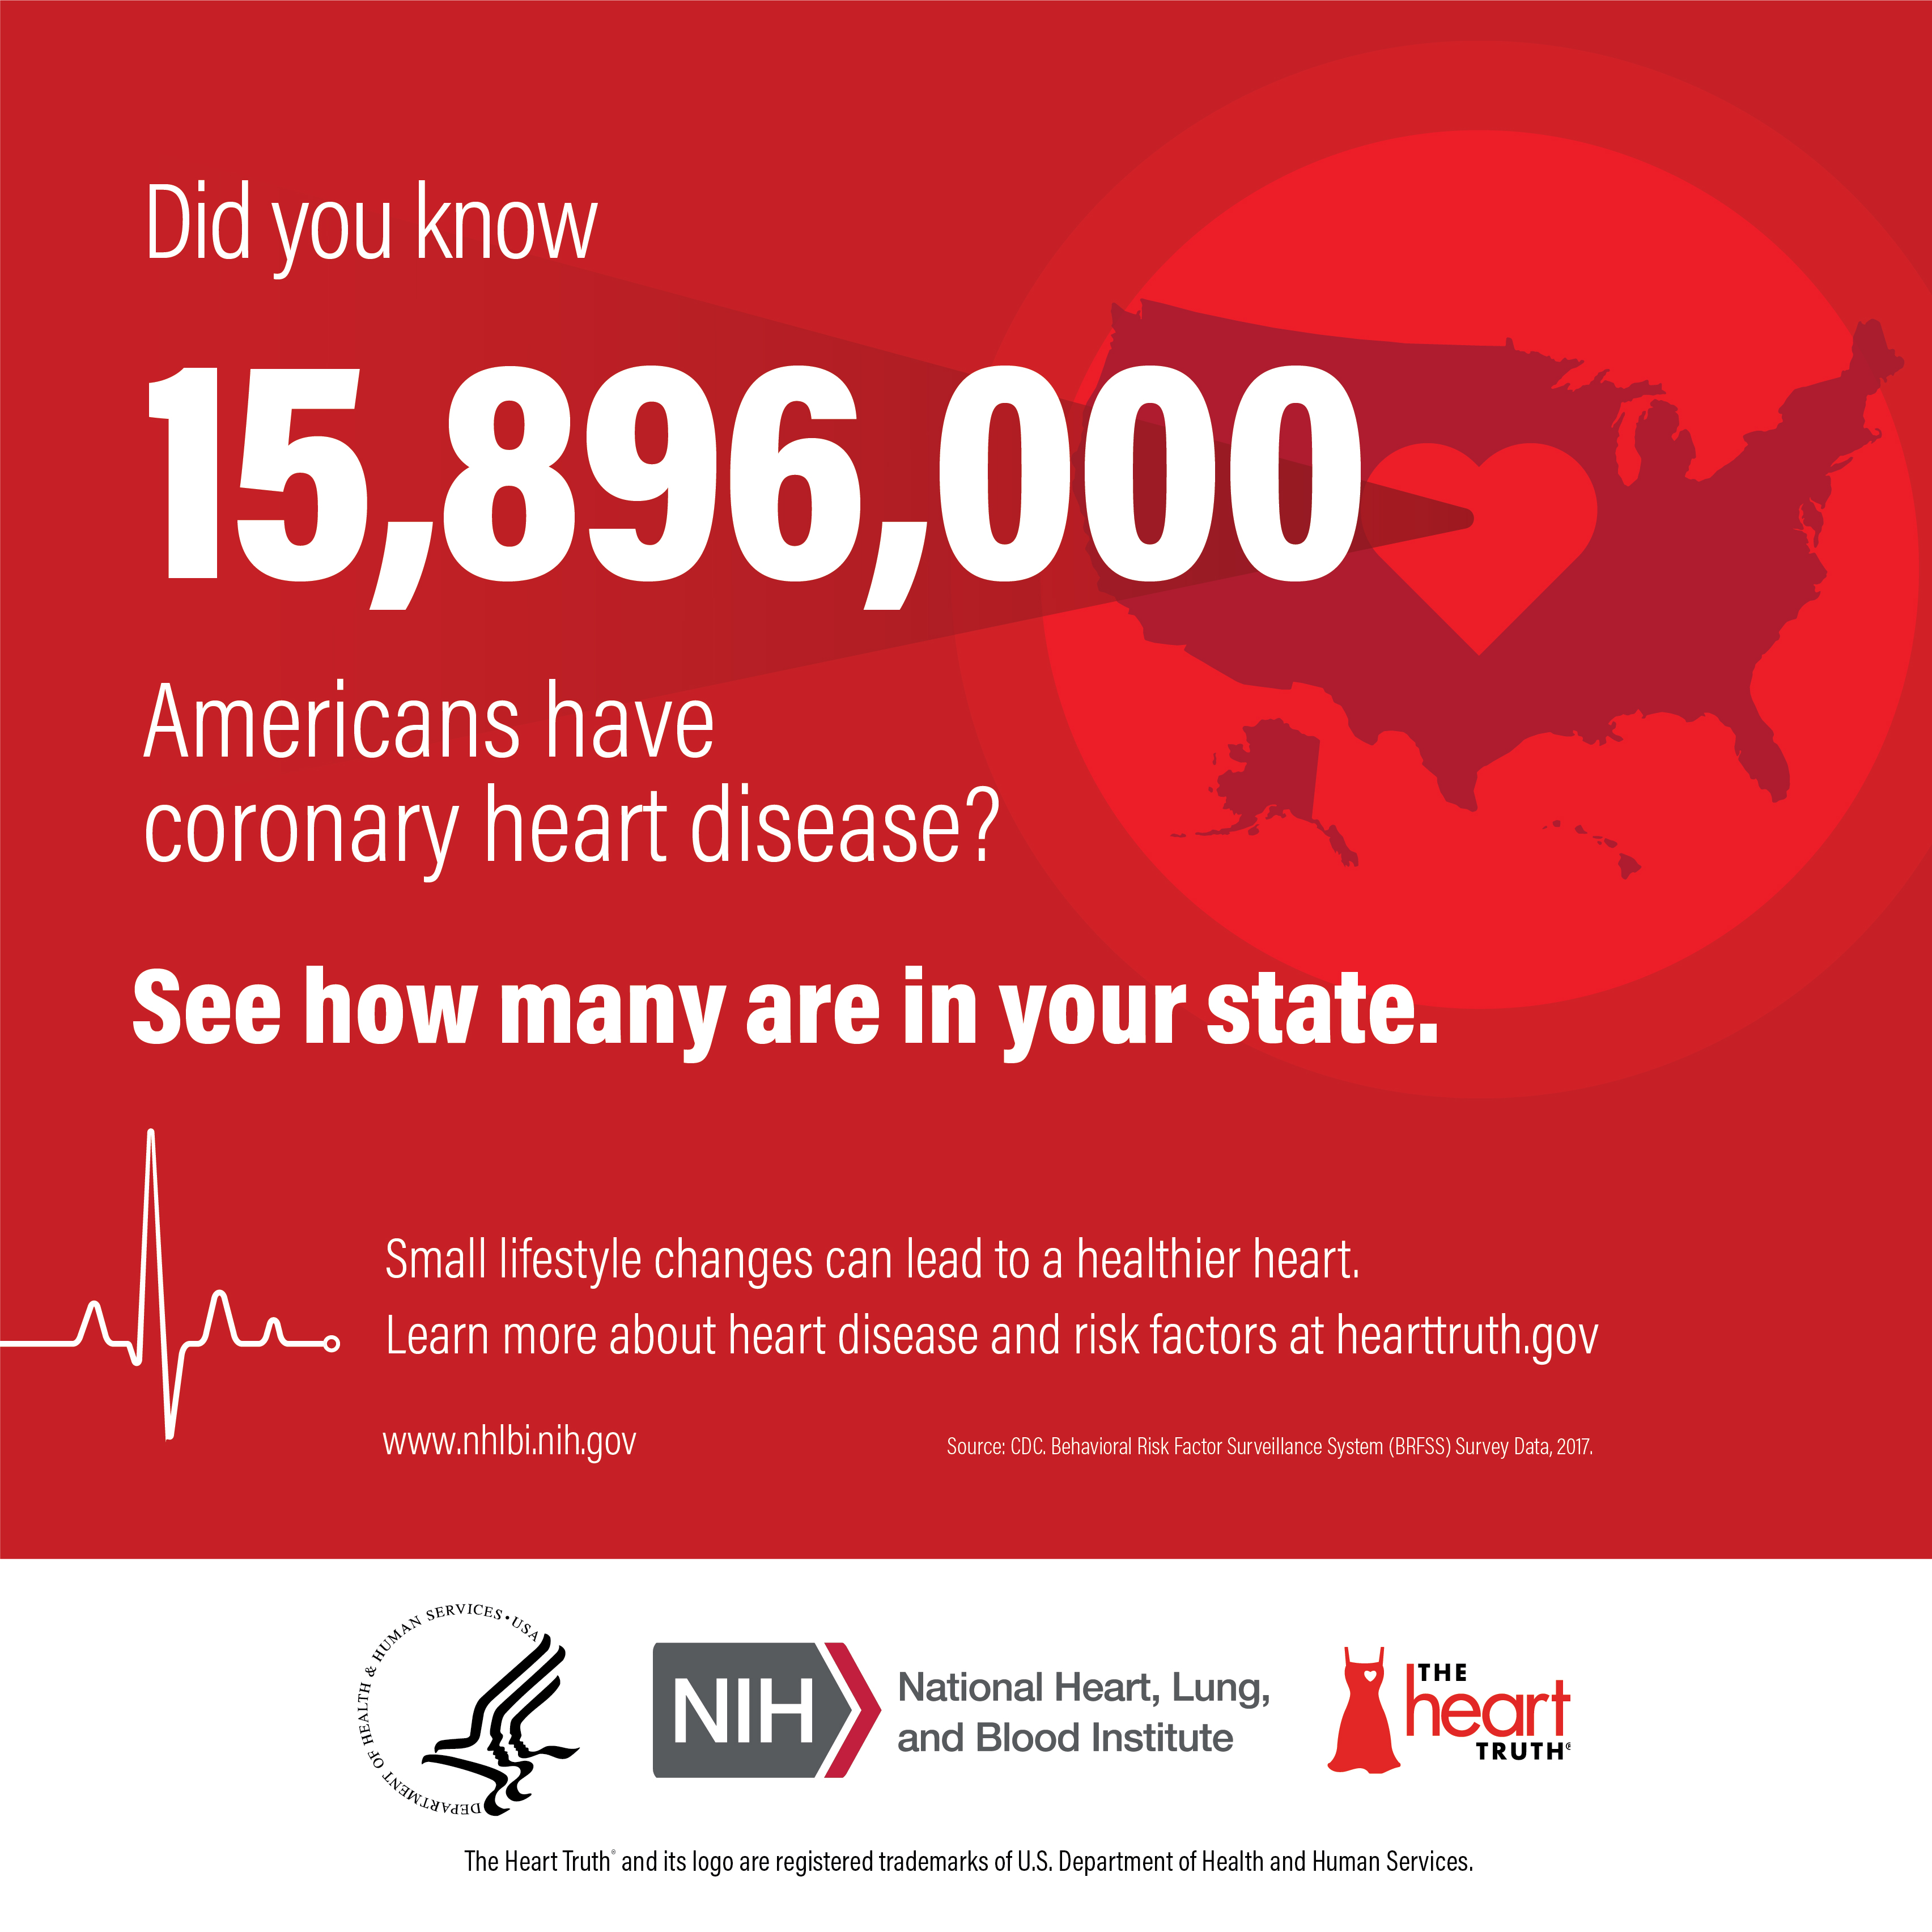 Infocard: Did you know 15896000 Americans have coronary heart disease? See how many are in your State